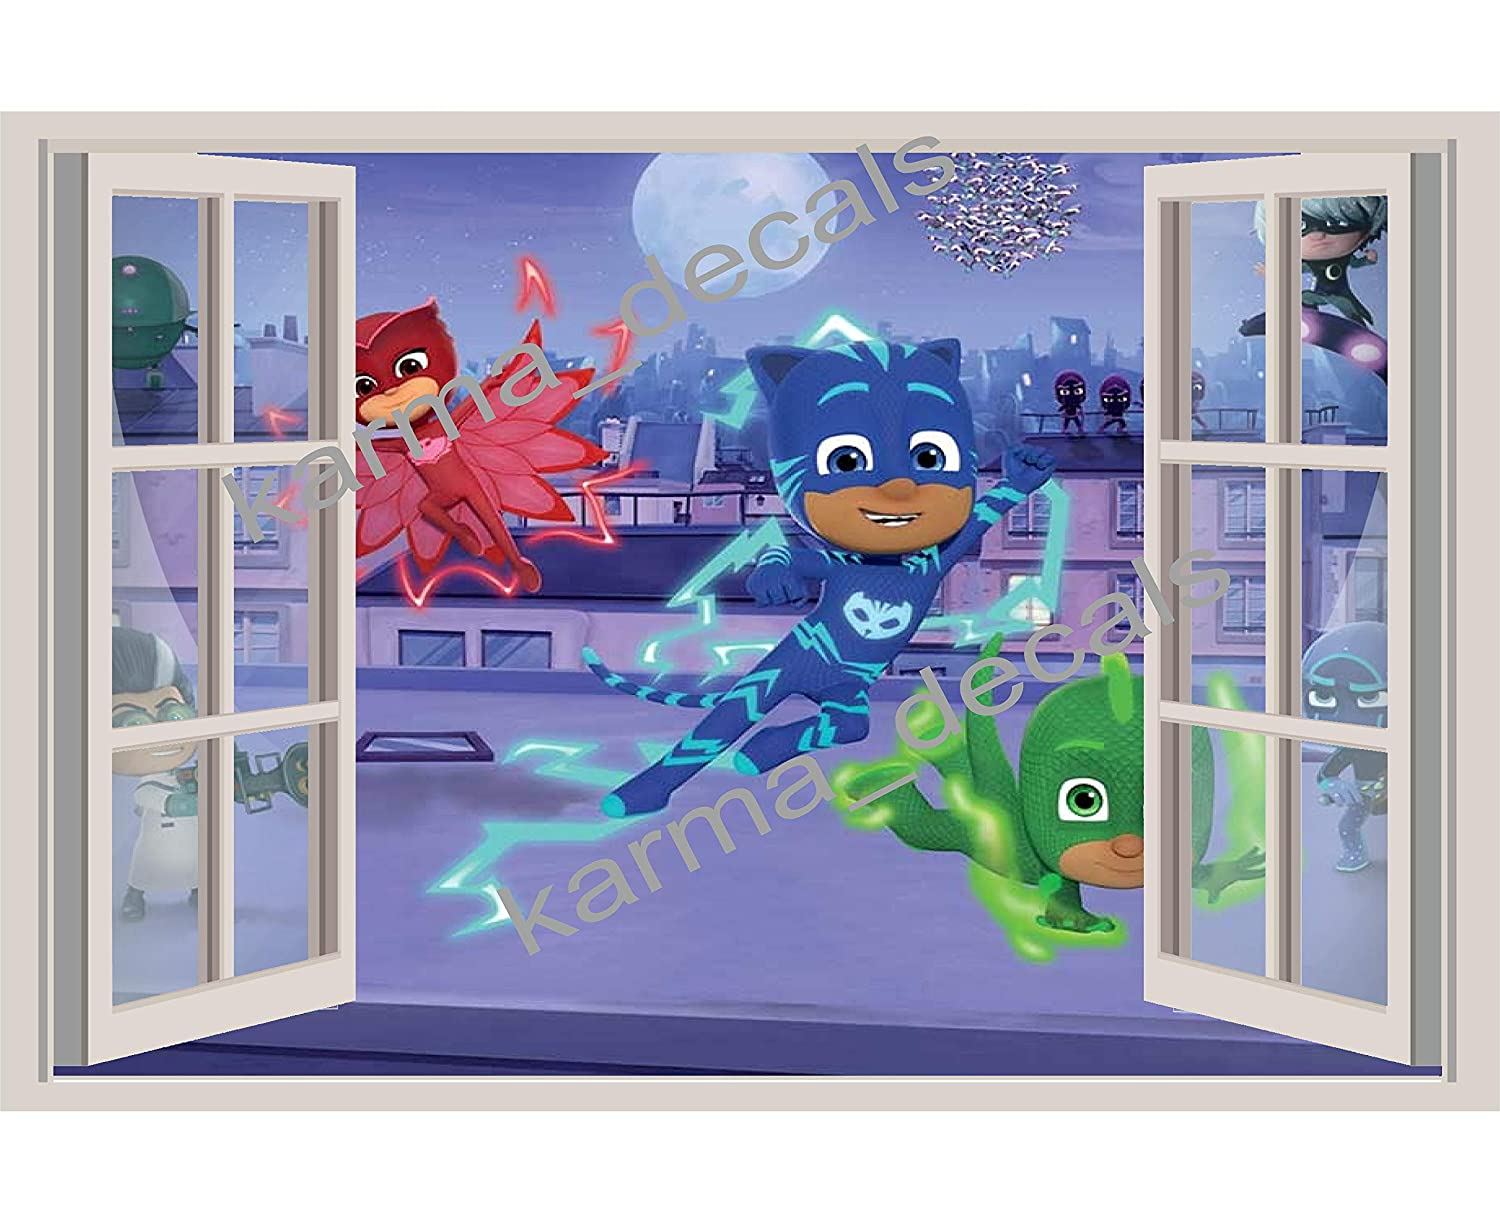 Amazon.com: Pj Masks kids bedroom 3D Window View Decal Graphic WALL STICKER Art Mural 18